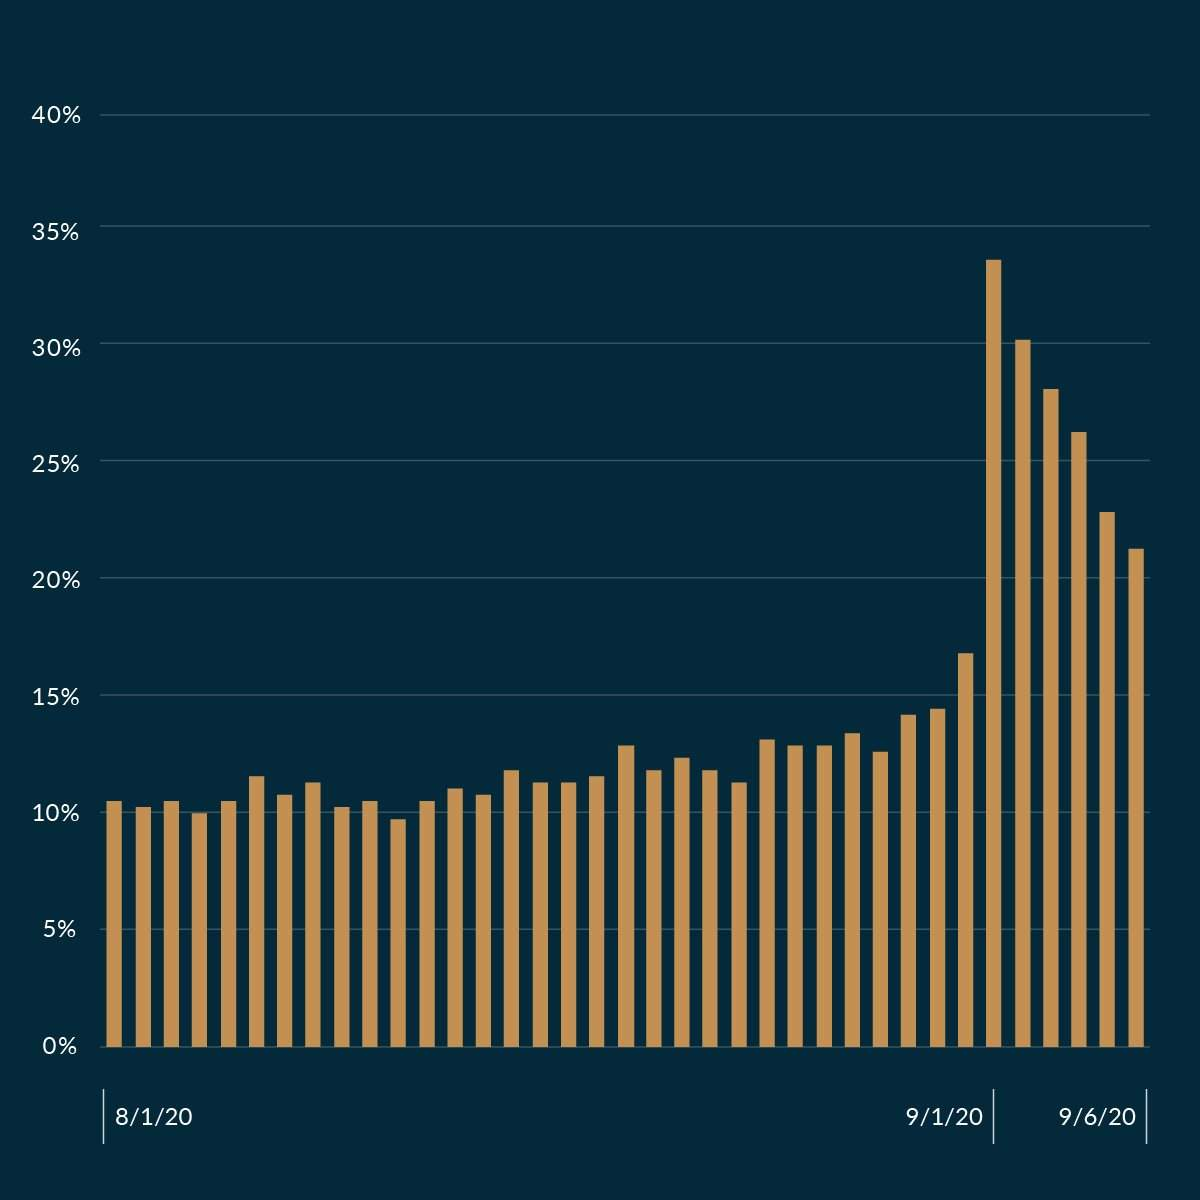 Percentage Hulk page views compared to total Submariner page views on Chrono24